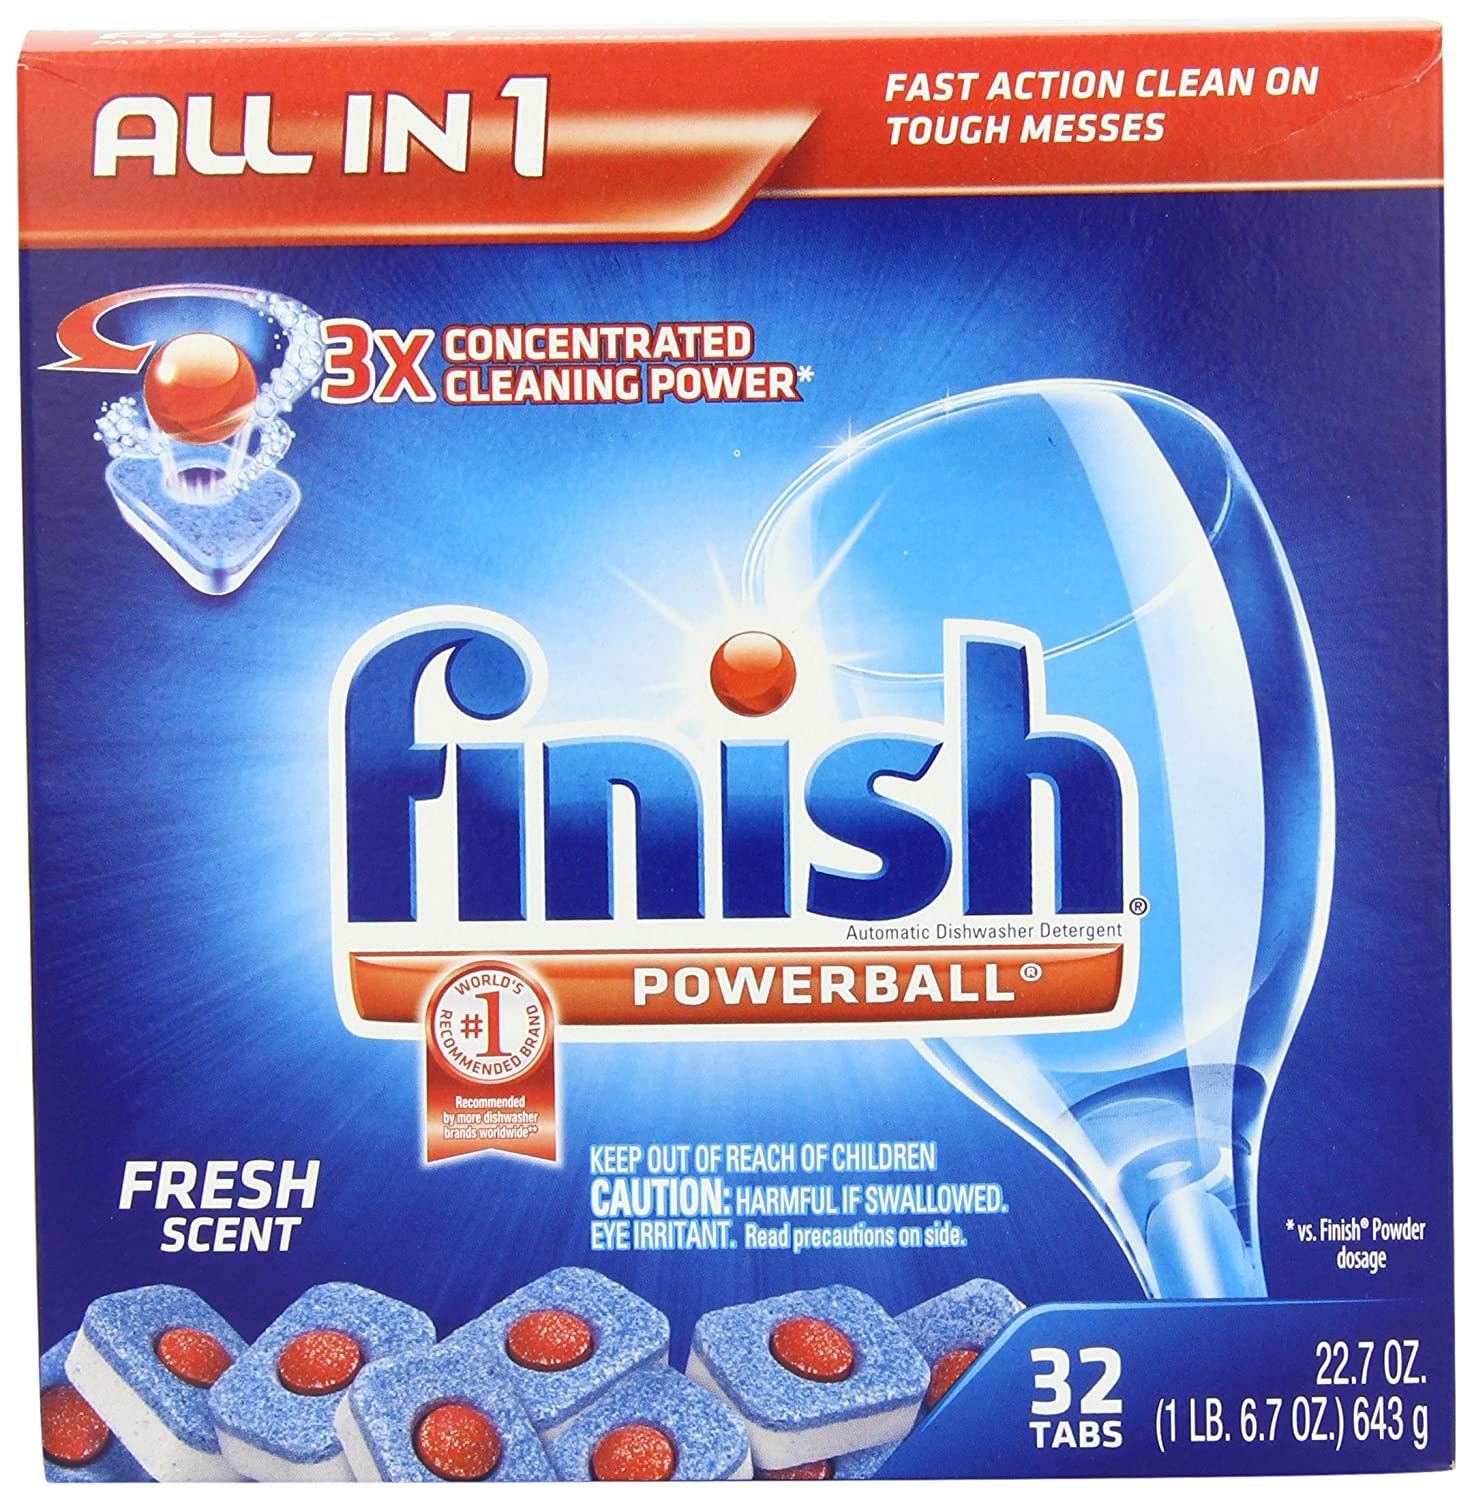 Finish Powerball Tabs Dishwasher Detergent, Fresh Scent, 32-Count $3.52